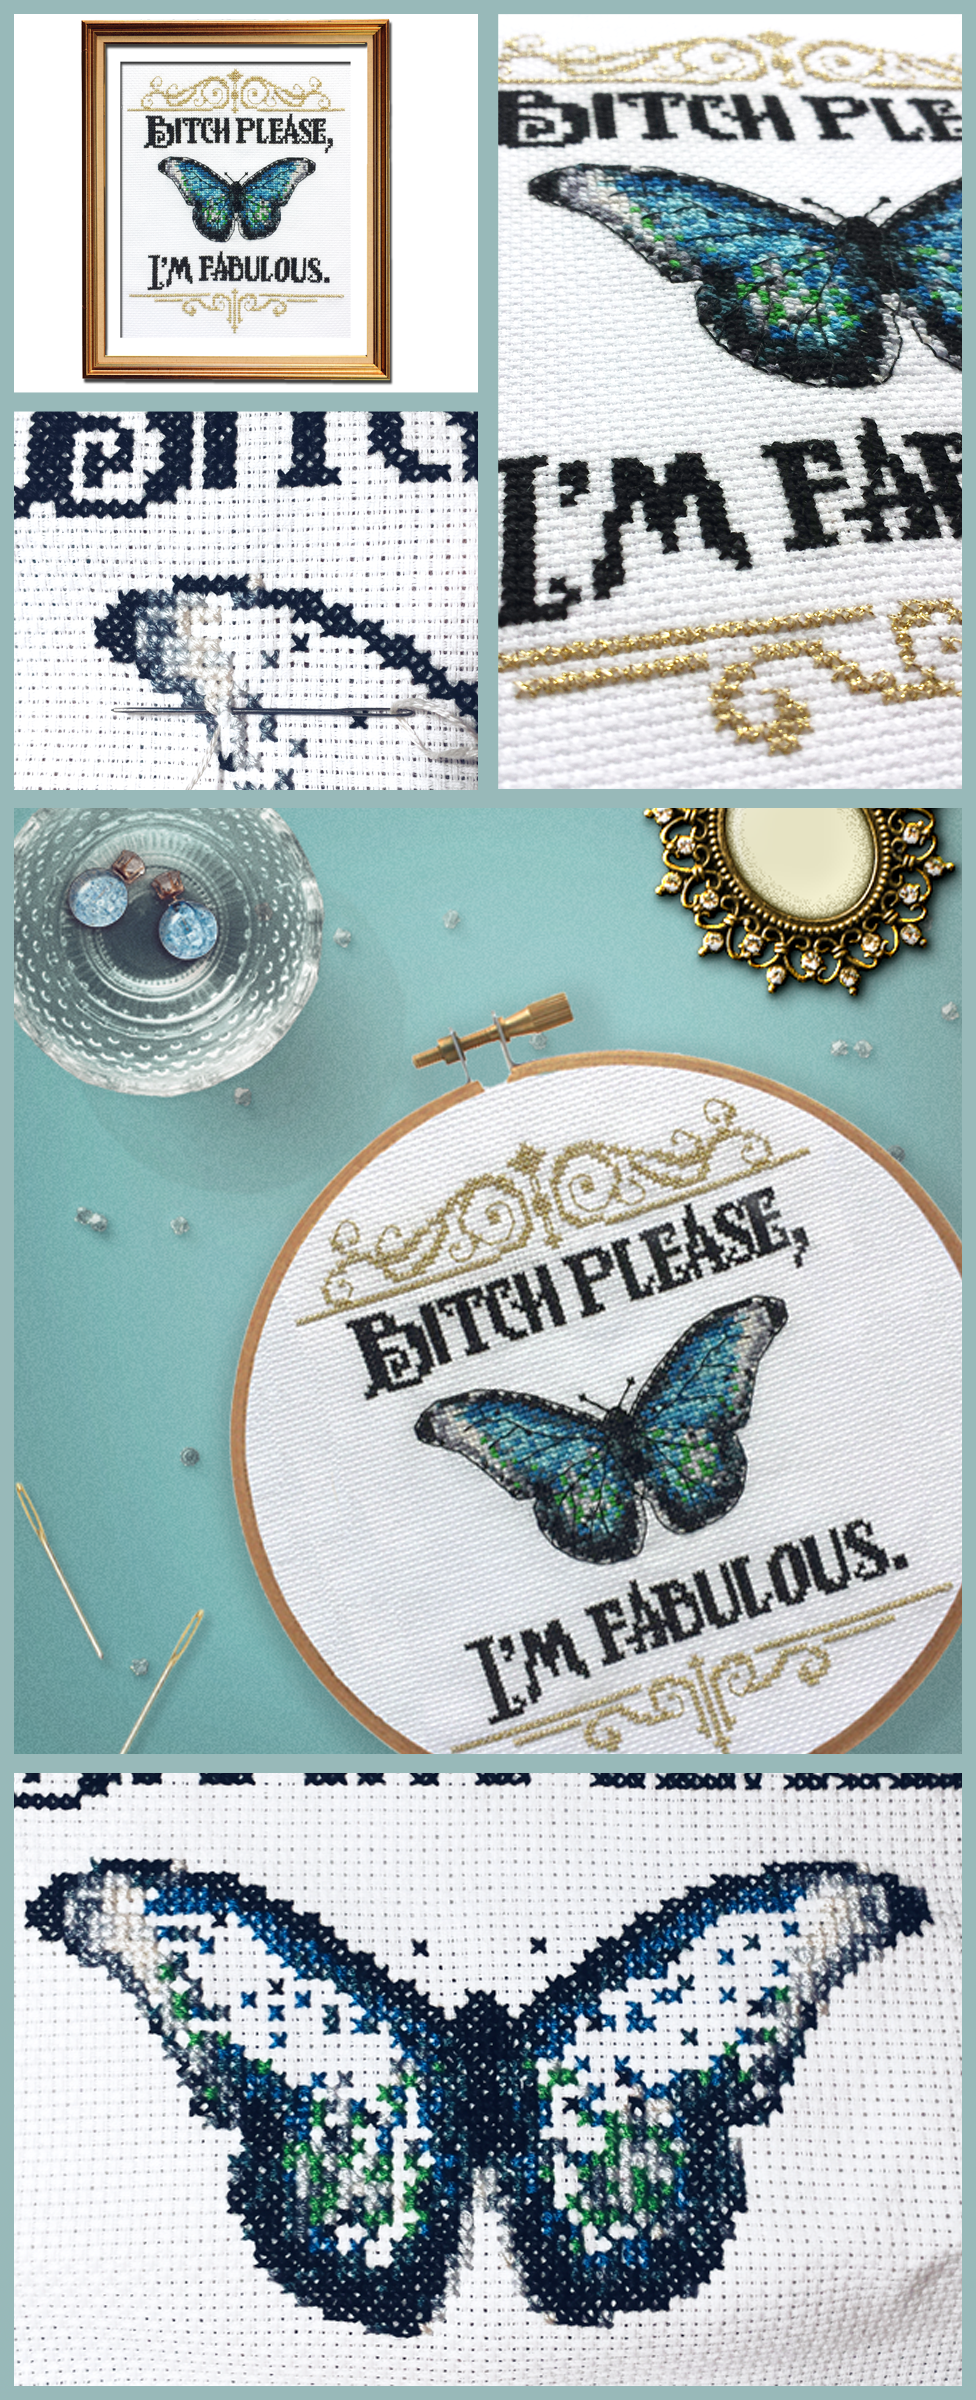 Ium fabulous cross stitch pattern funny cross stitch patterns